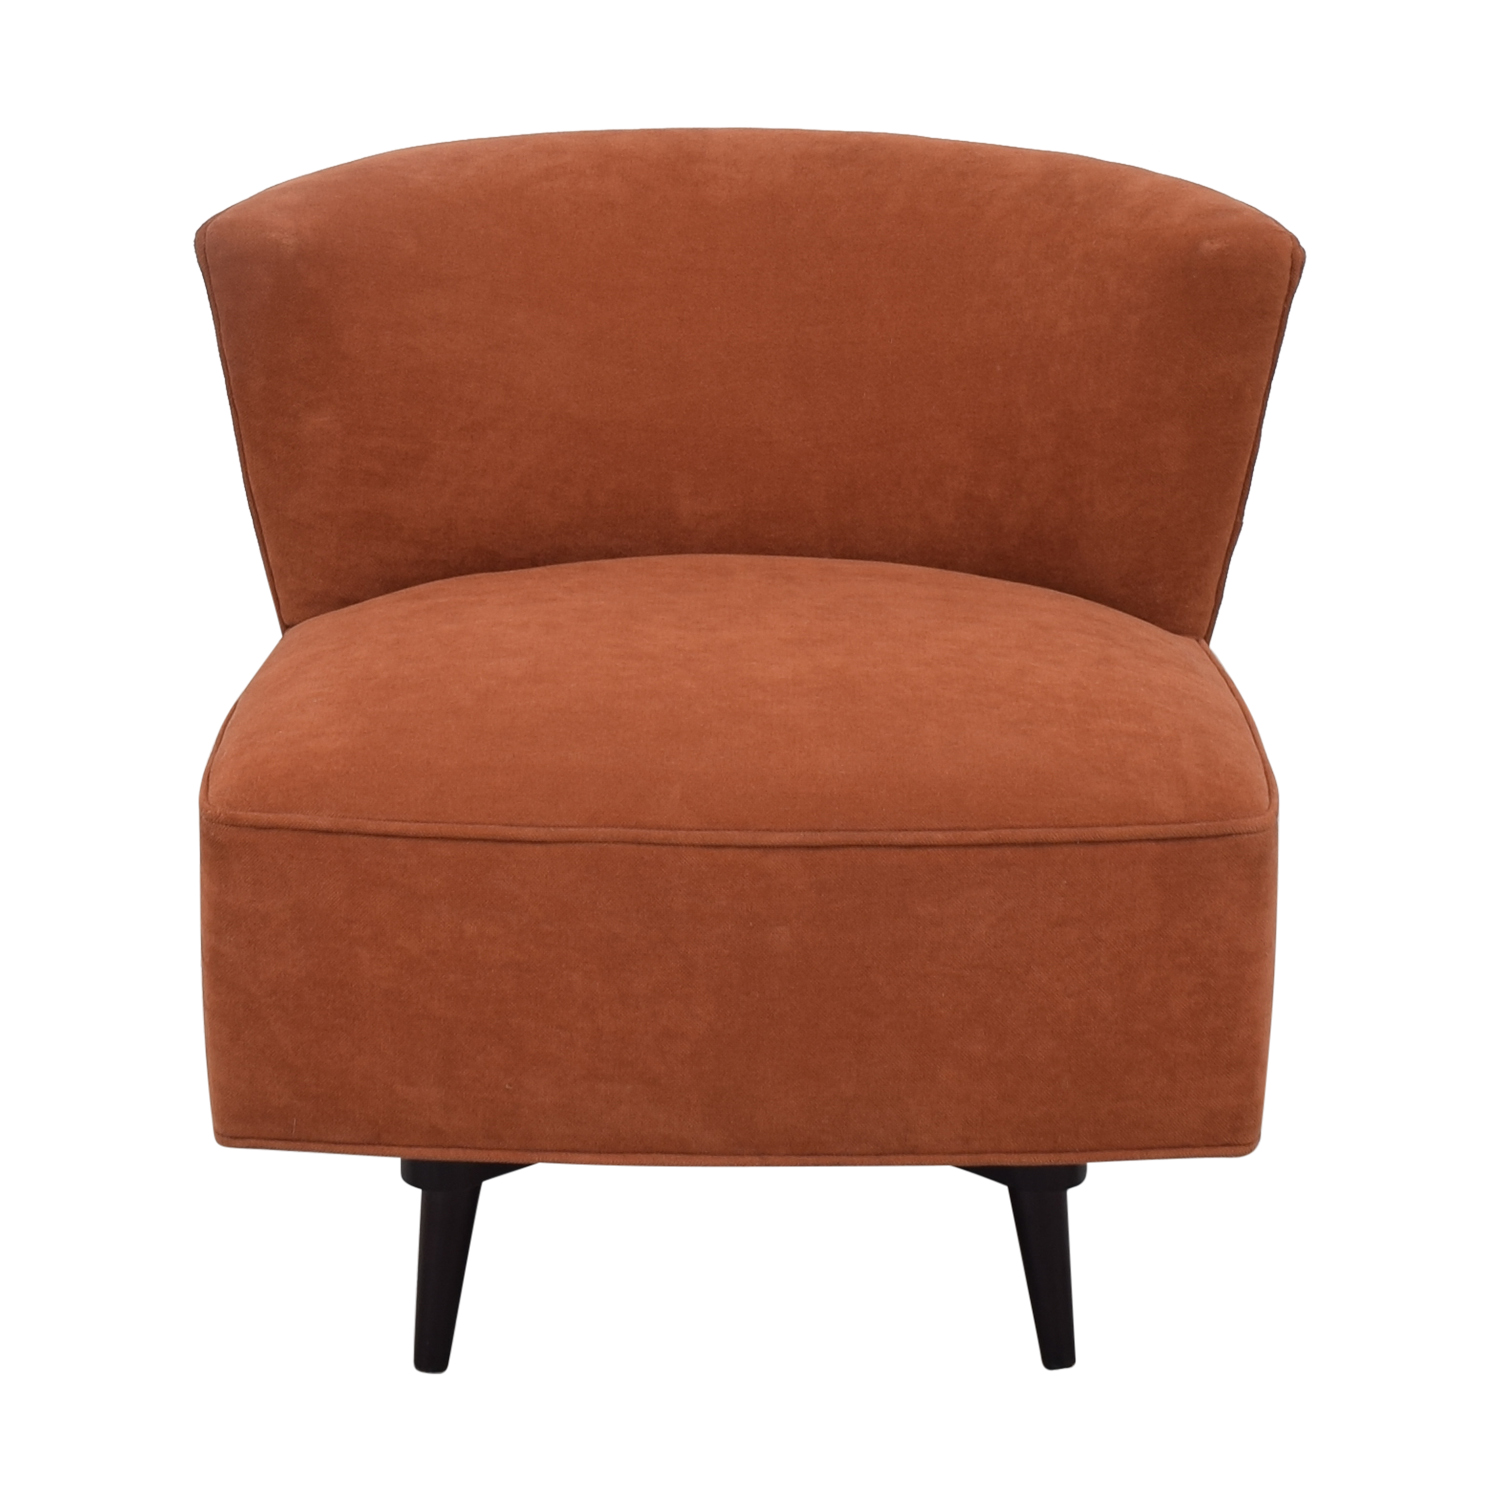 Room & Board Room and Board Mid Century Swivel Chair coupon